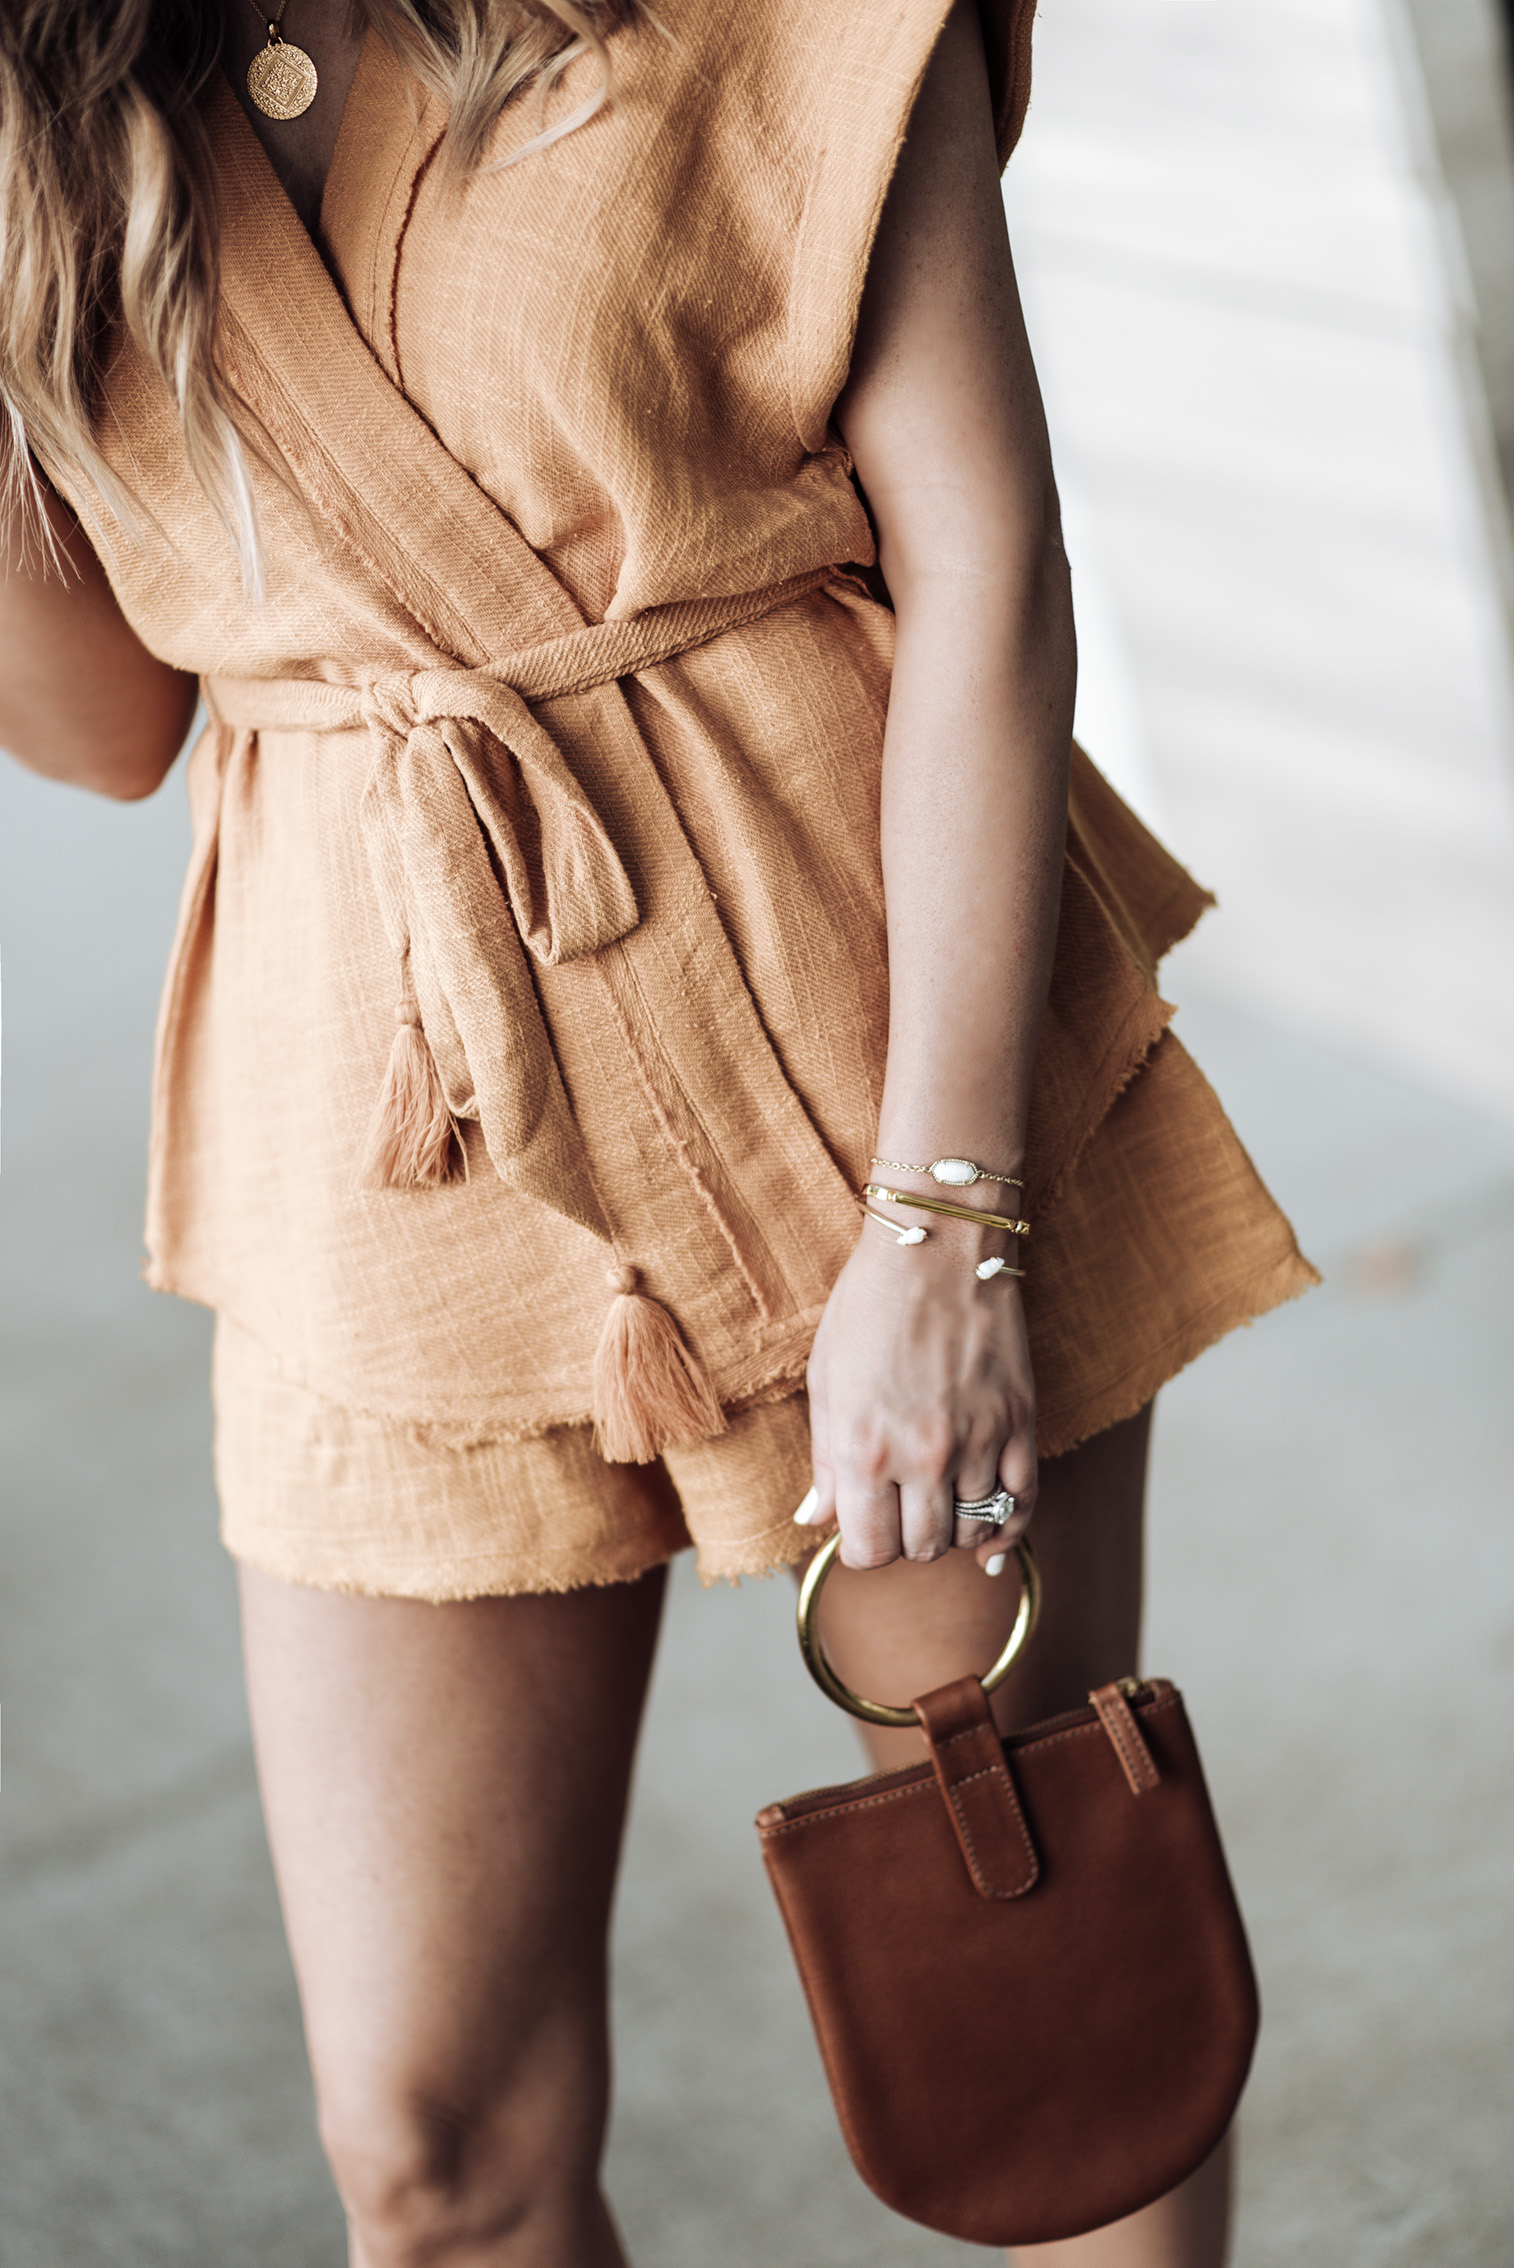 Free People So Simple Set (Size small) | Kendra Scott Elaina bracelet & the Jackson Pinch bracelet(Available at Kendra Scott at the Rice Village Shopping Center) | Mini Marie Pendant | Signature Bandle Monica Vinader | OTAAT/MYERS Collective Ring pouch